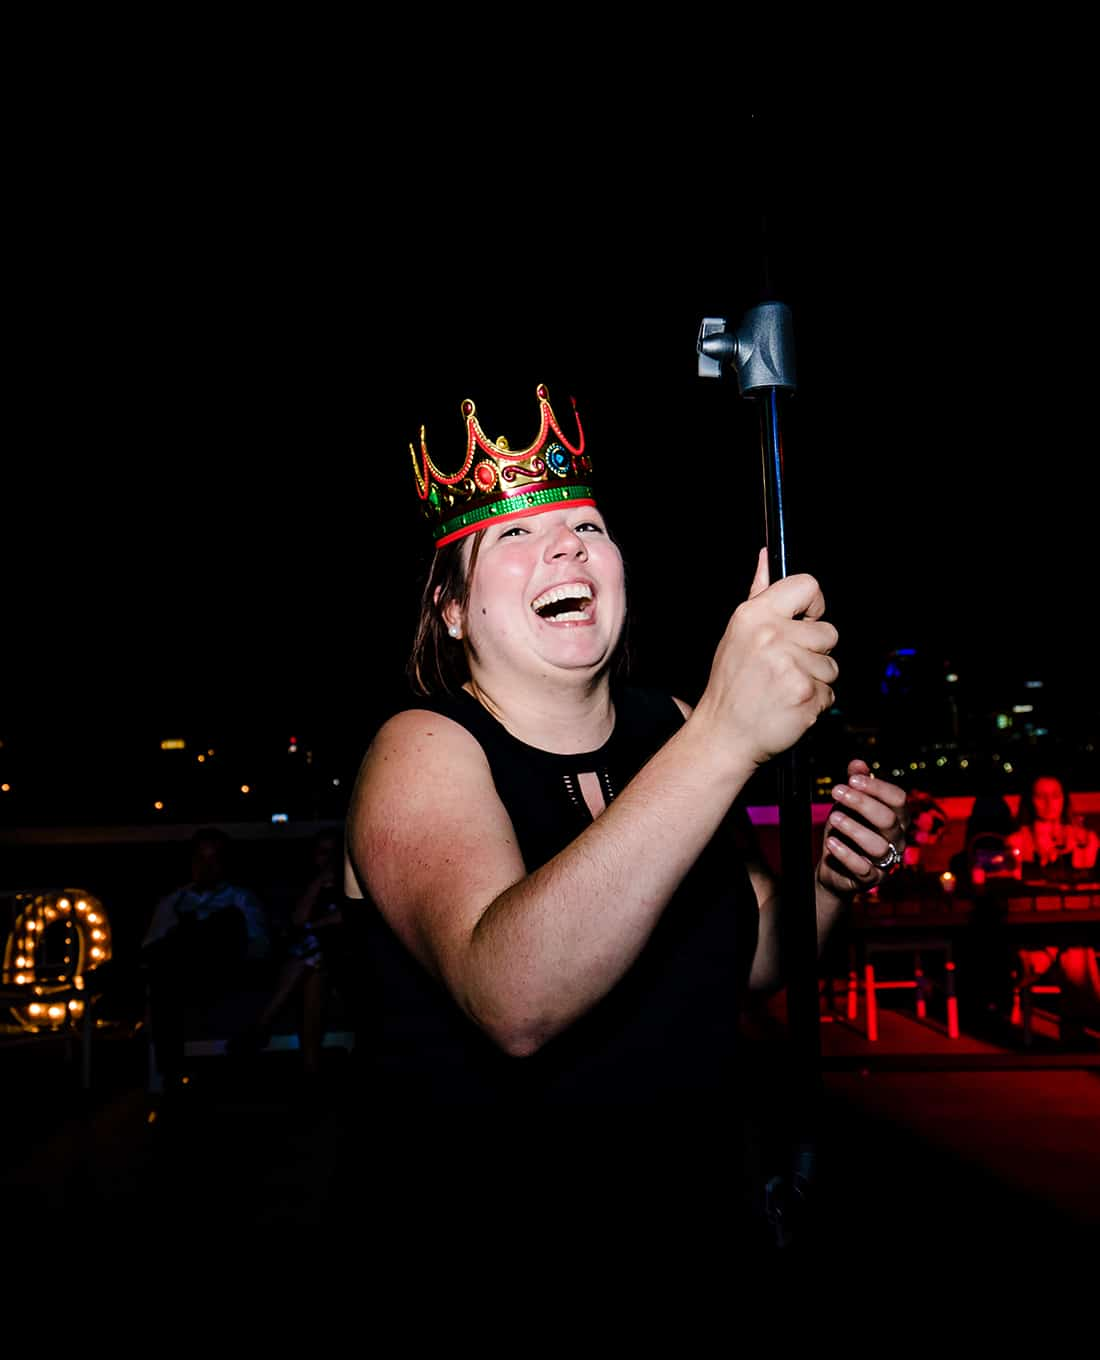 A colorfl, candid picture taken at night of a photographer holding a lightstand in the middle of a dance floor with a plastic crown on her head, laughing hysterically.